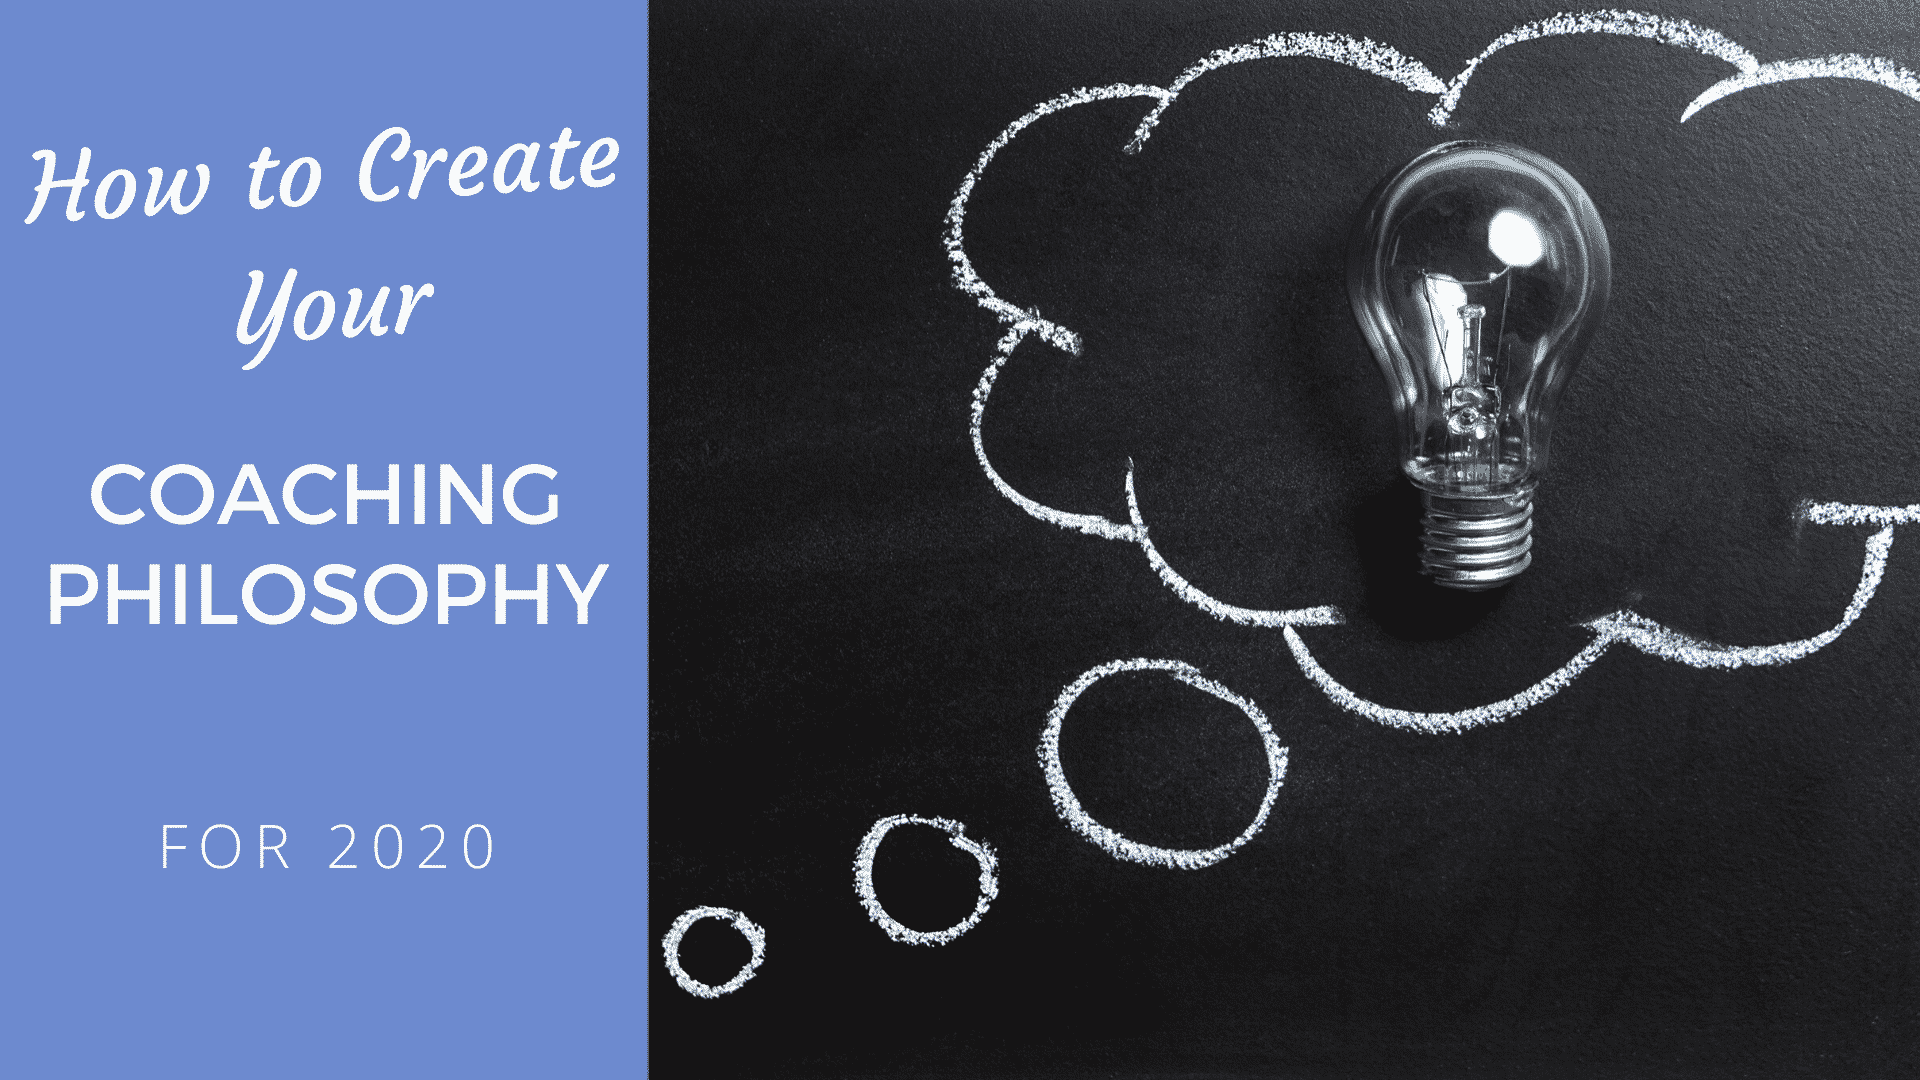 How to Create Your Coaching Philosophy for 2020